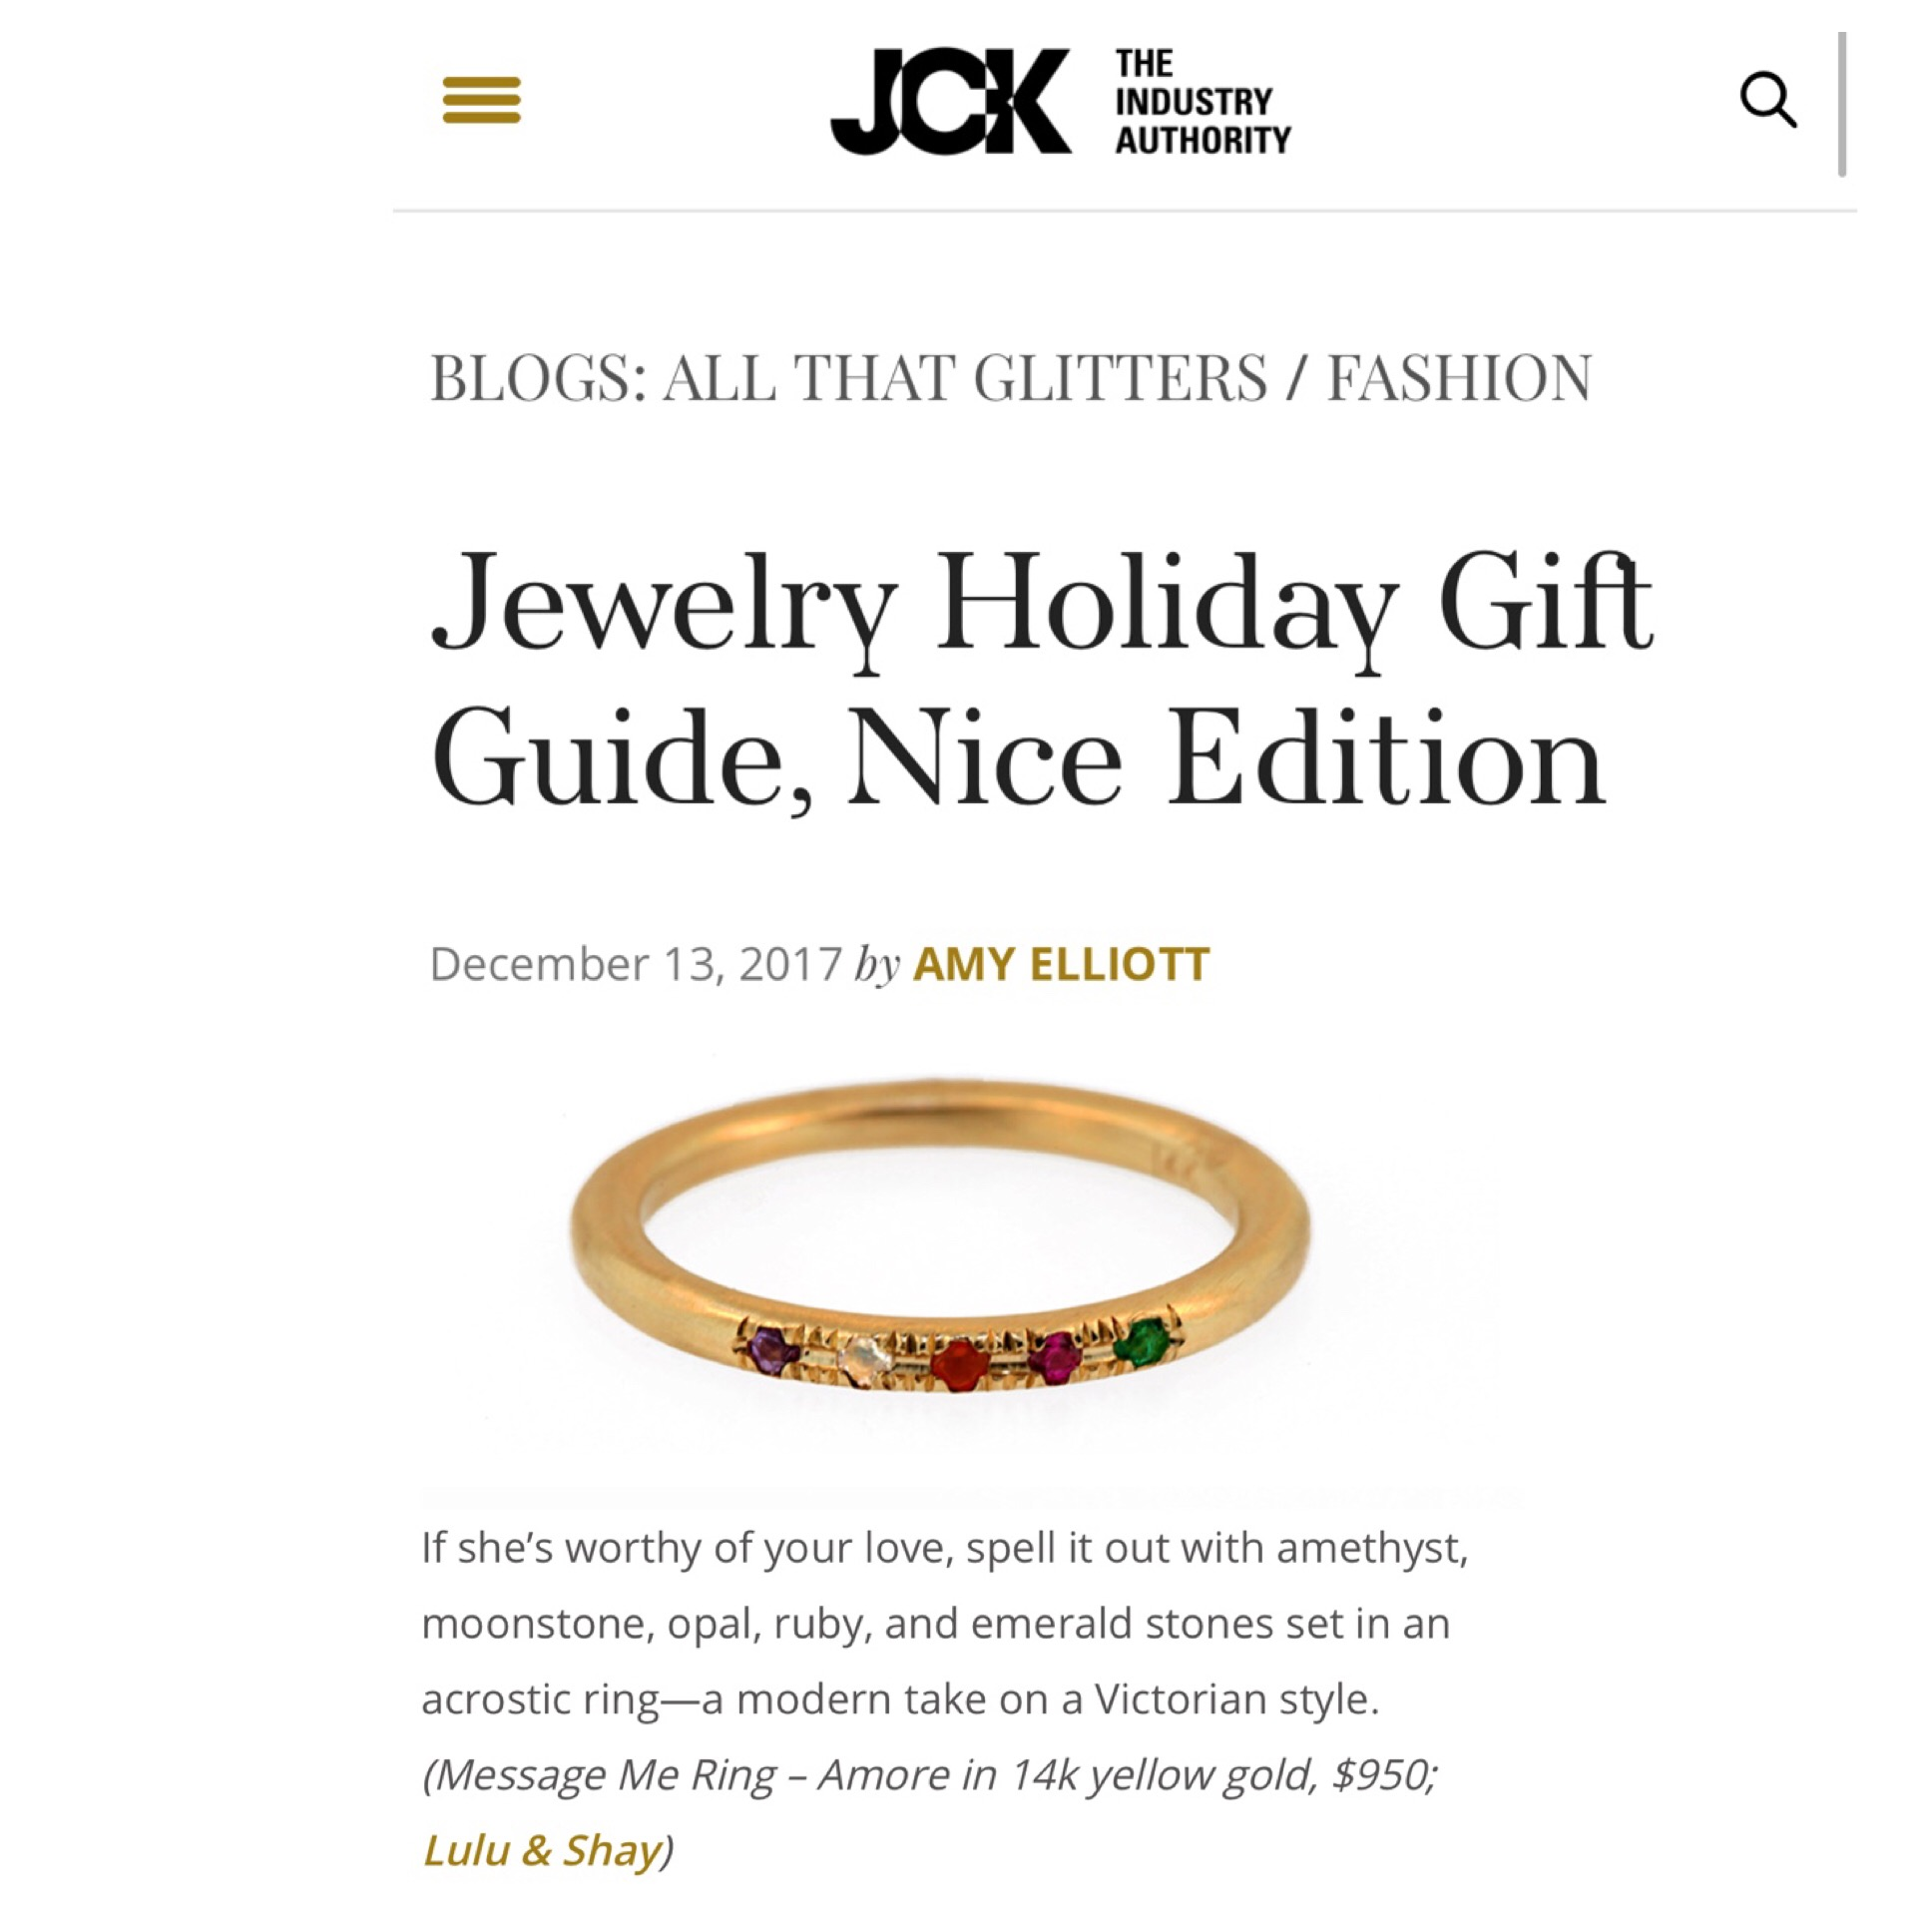 JCK Jewelry Holiday Gift Guide, Nice Edition